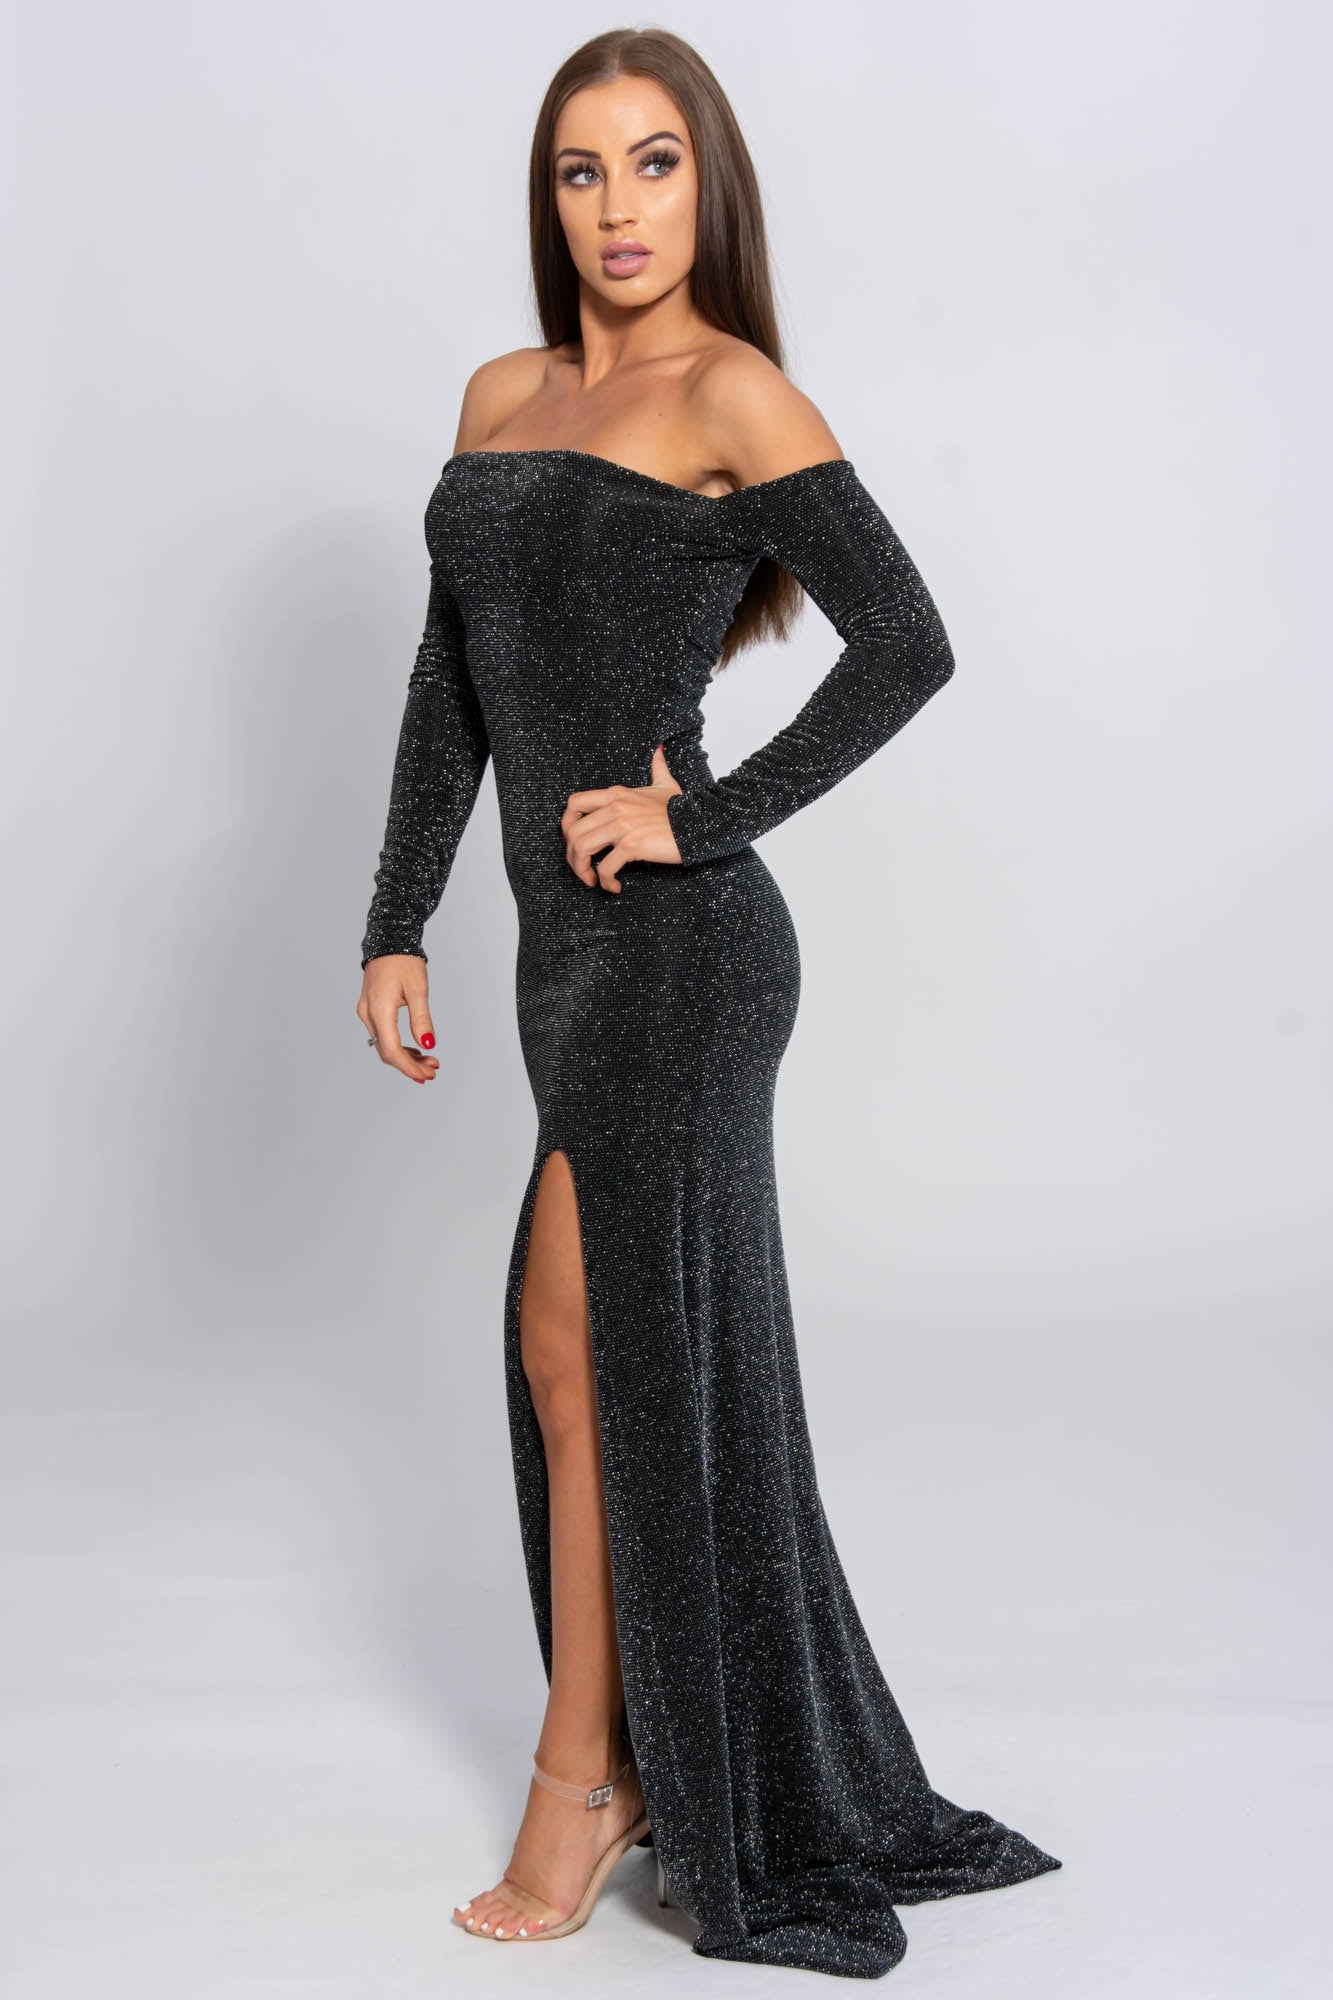 THE 'DEVON' DRESS